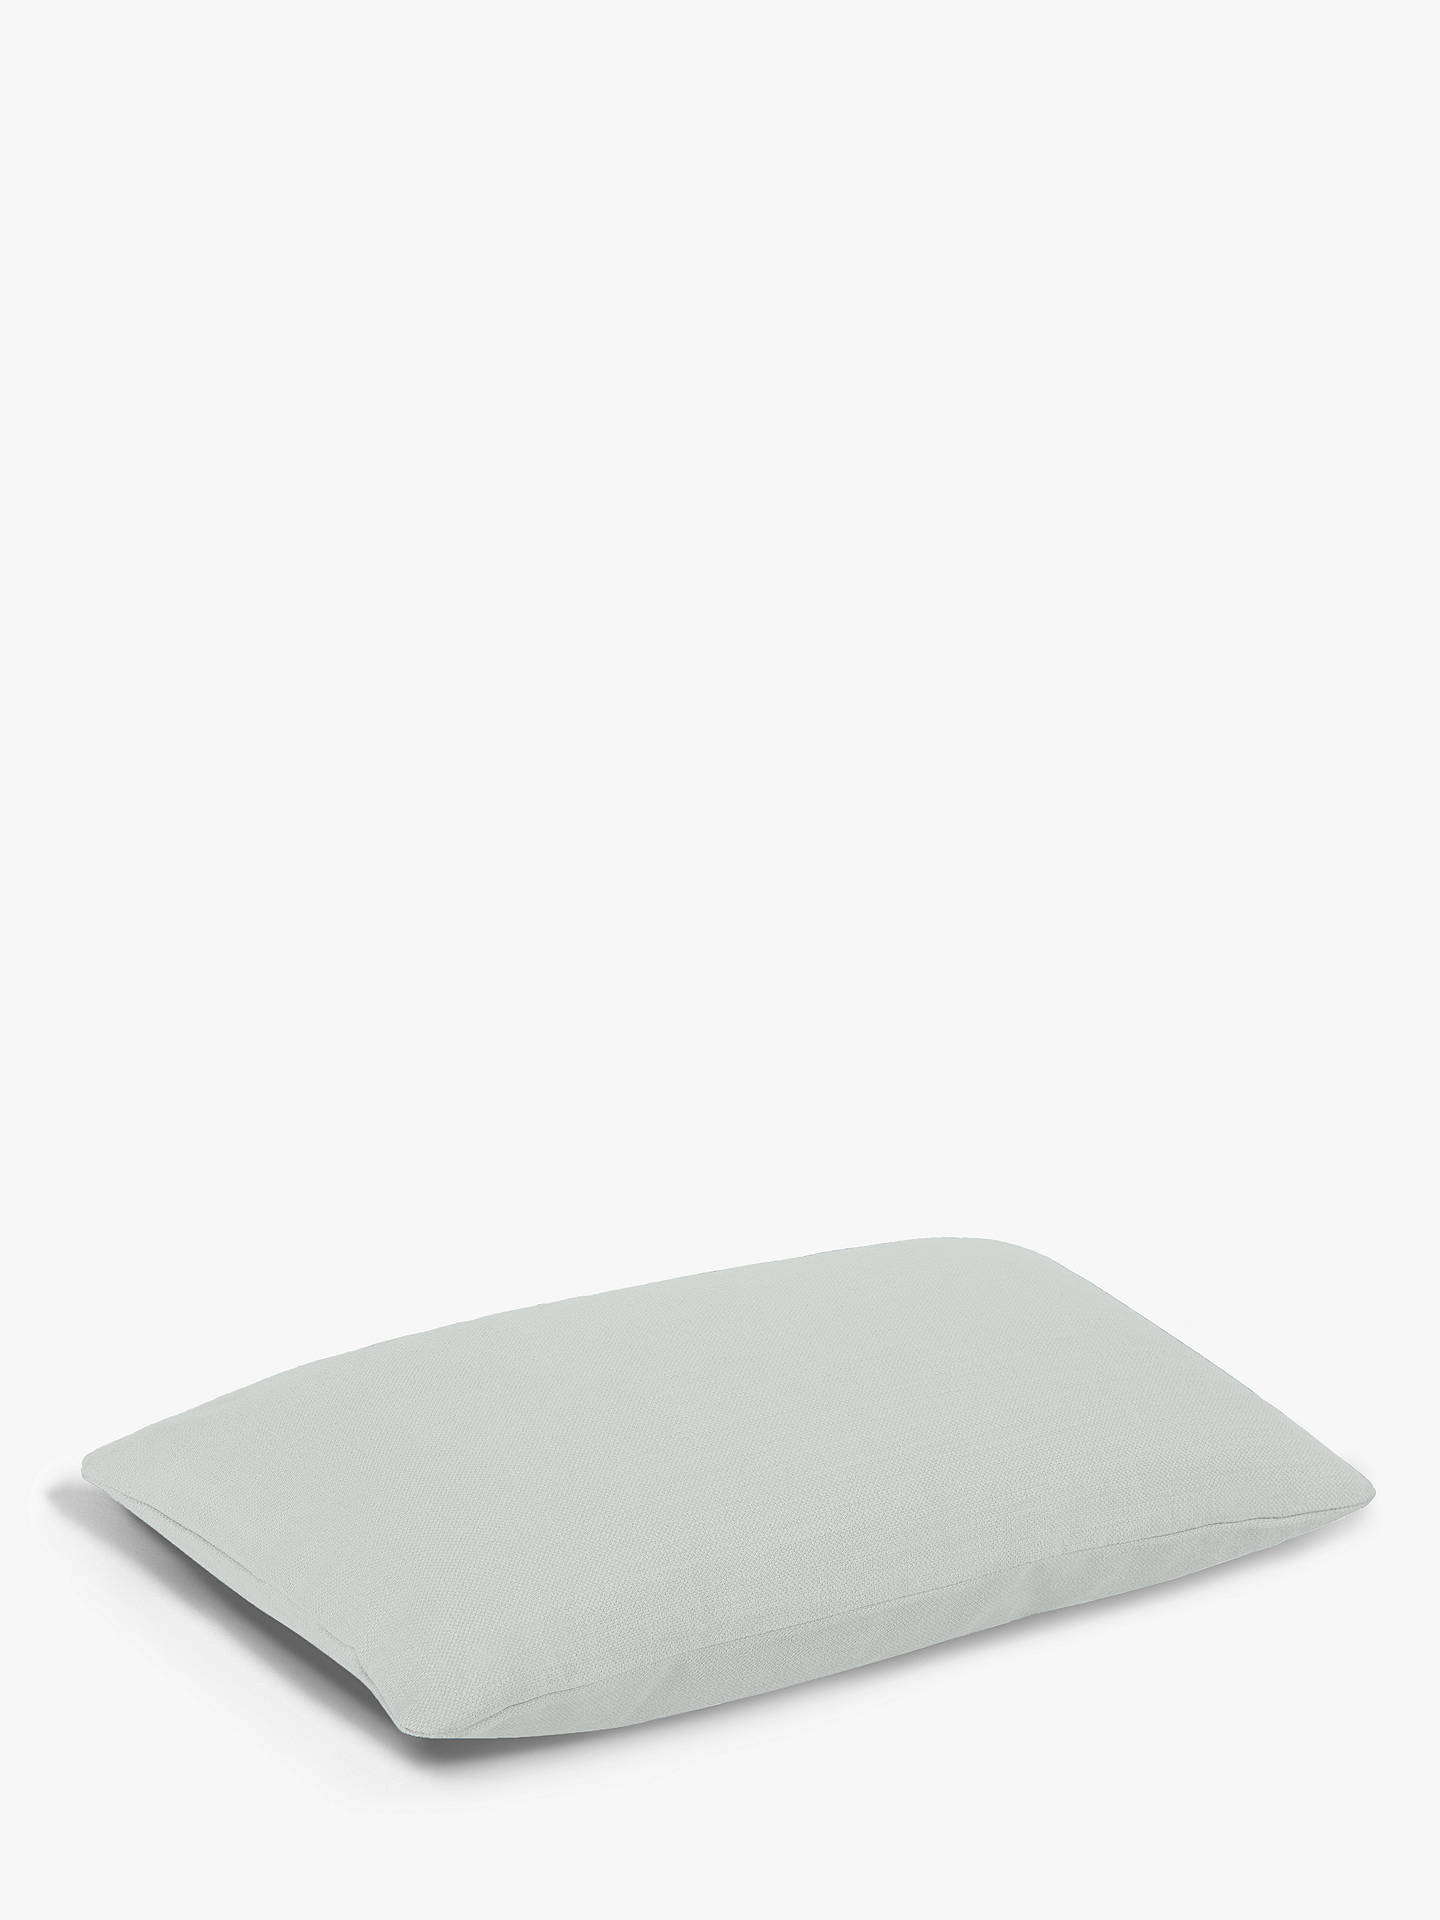 Buy Rectangular Stretch Scatter Cushion by Loaf at John Lewis, Clever Softie Pewter Online at johnlewis.com